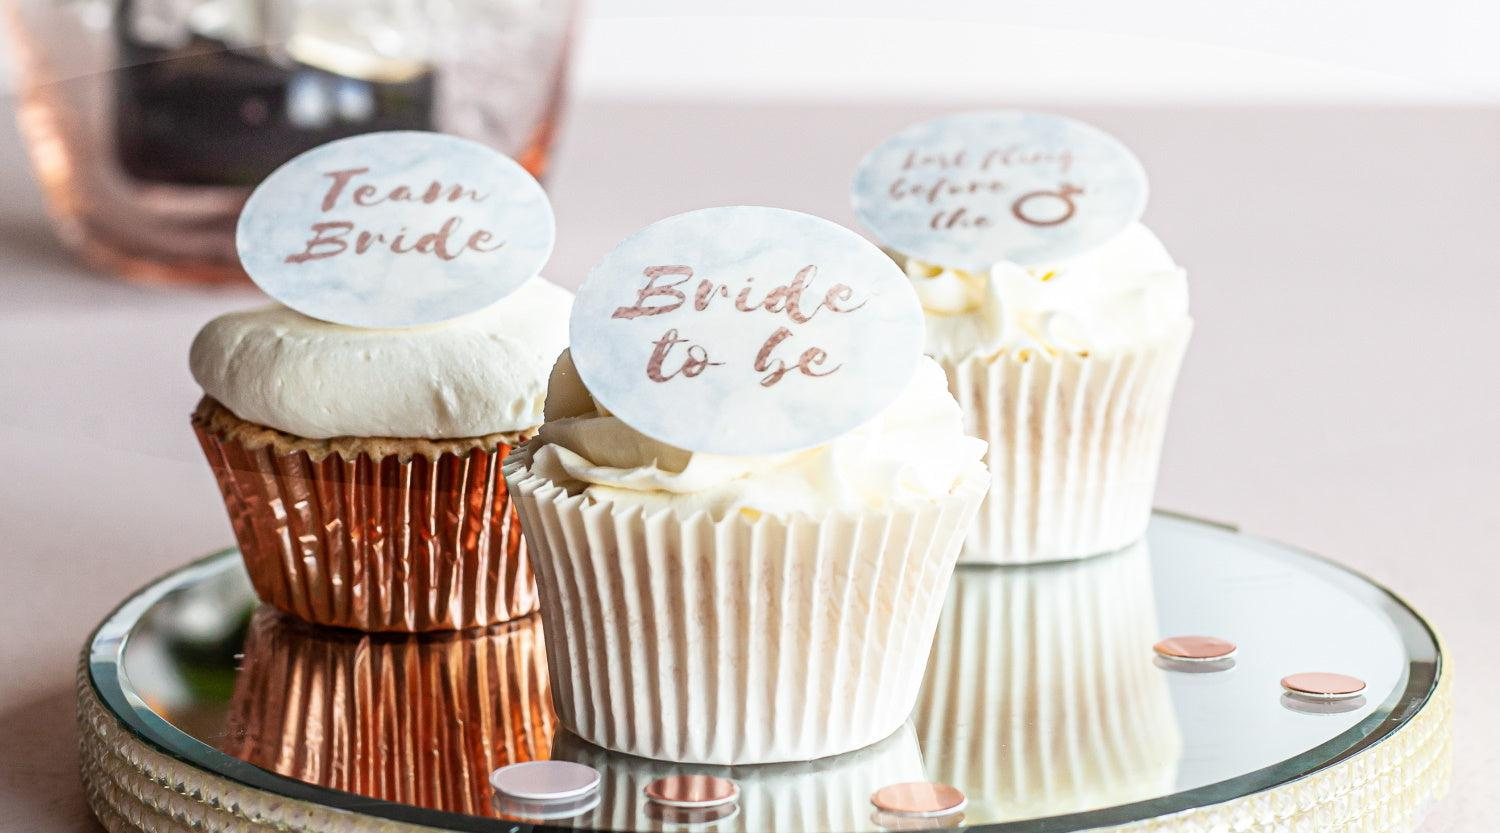 Predesigned edible cupcake toppers with Bride to Be and Team Bride messages